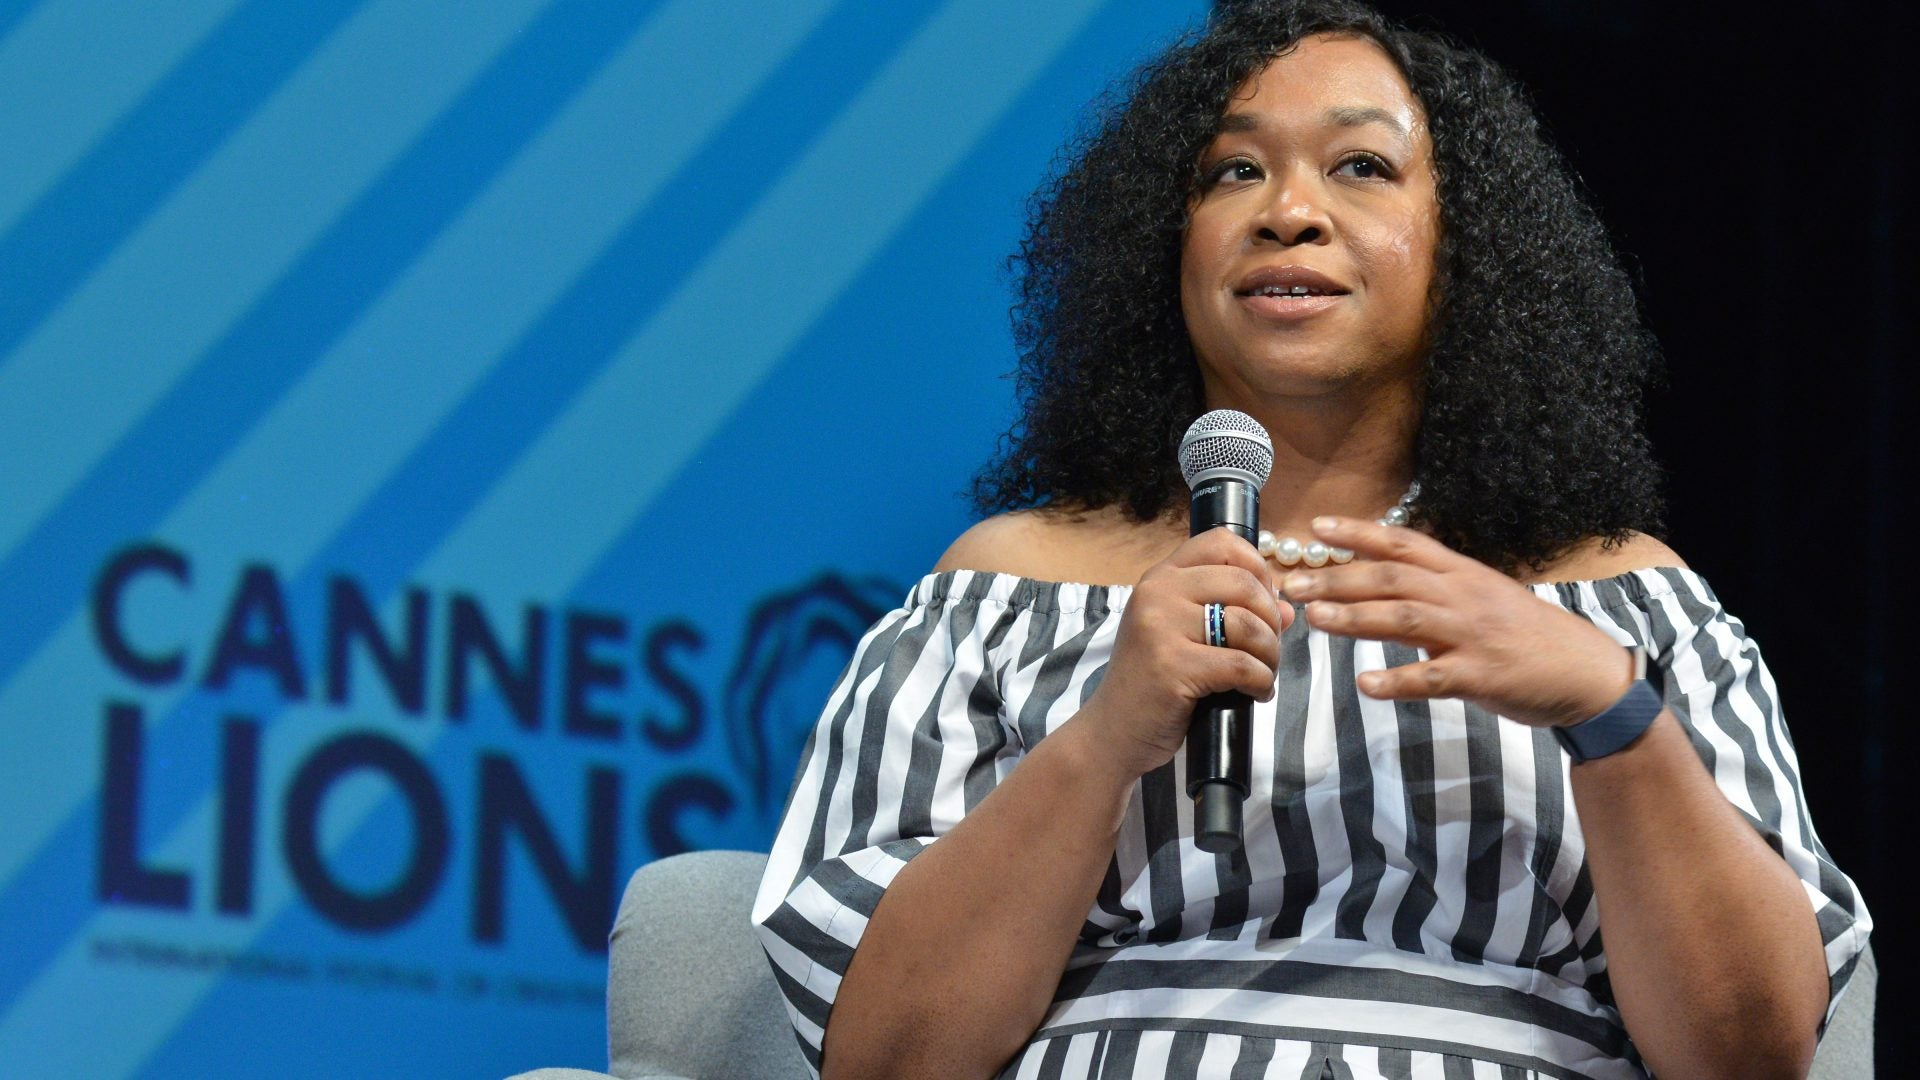 Amid School Closures Due to Coronavirus Shonda Rhimes Says 'Teachers Deserve To Make A Billion Dollars A Year'